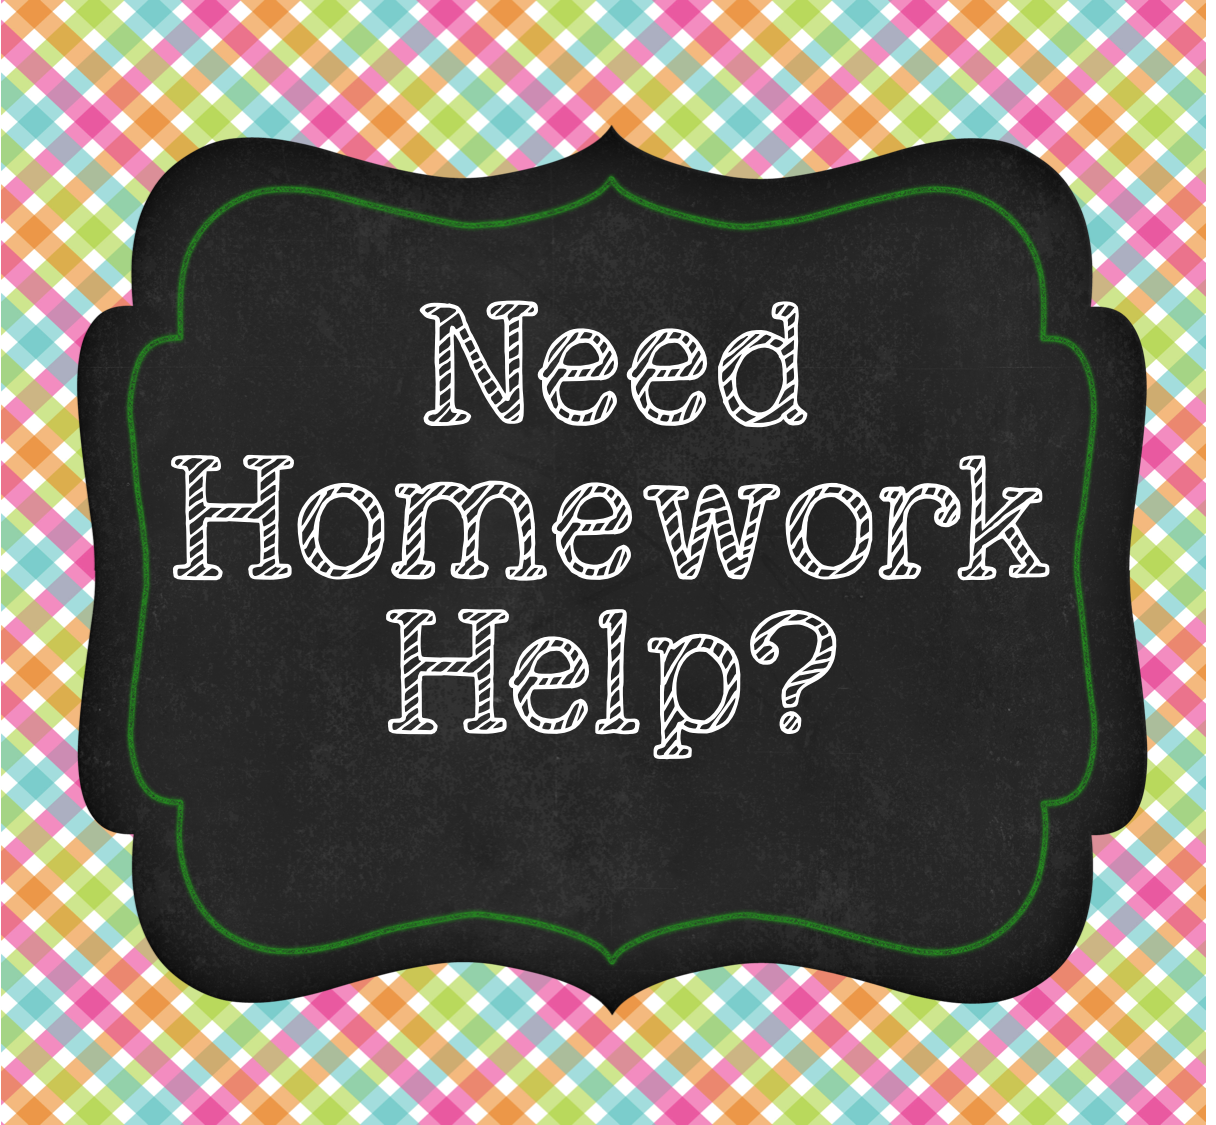 Homework help for esl students